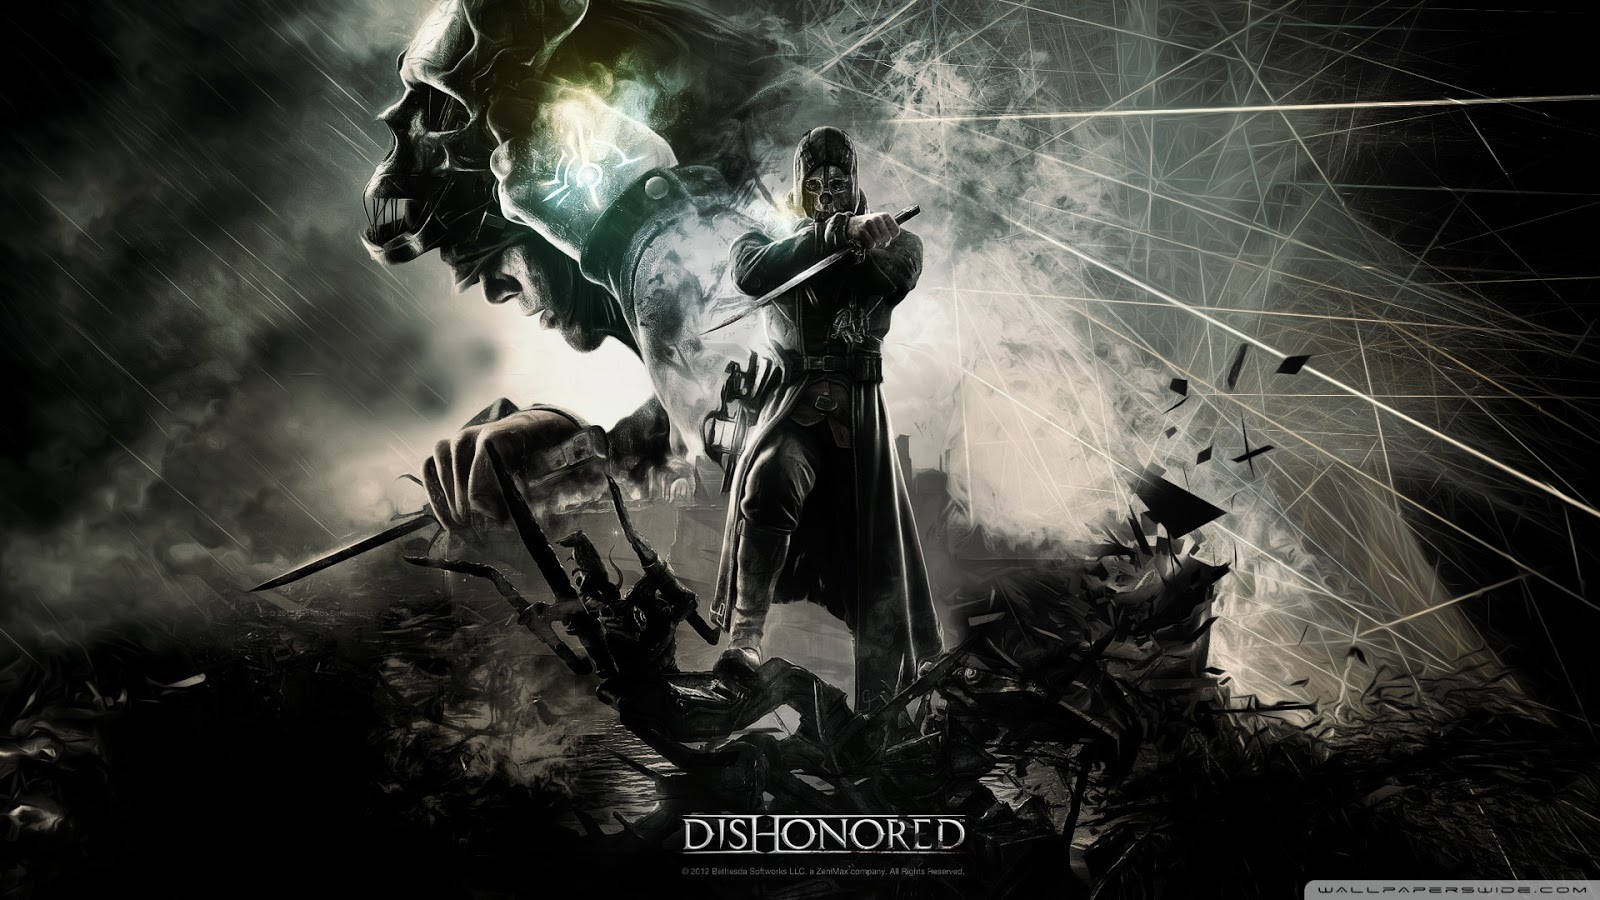 The Game Stuffs: Dishonored HD Wallpaper